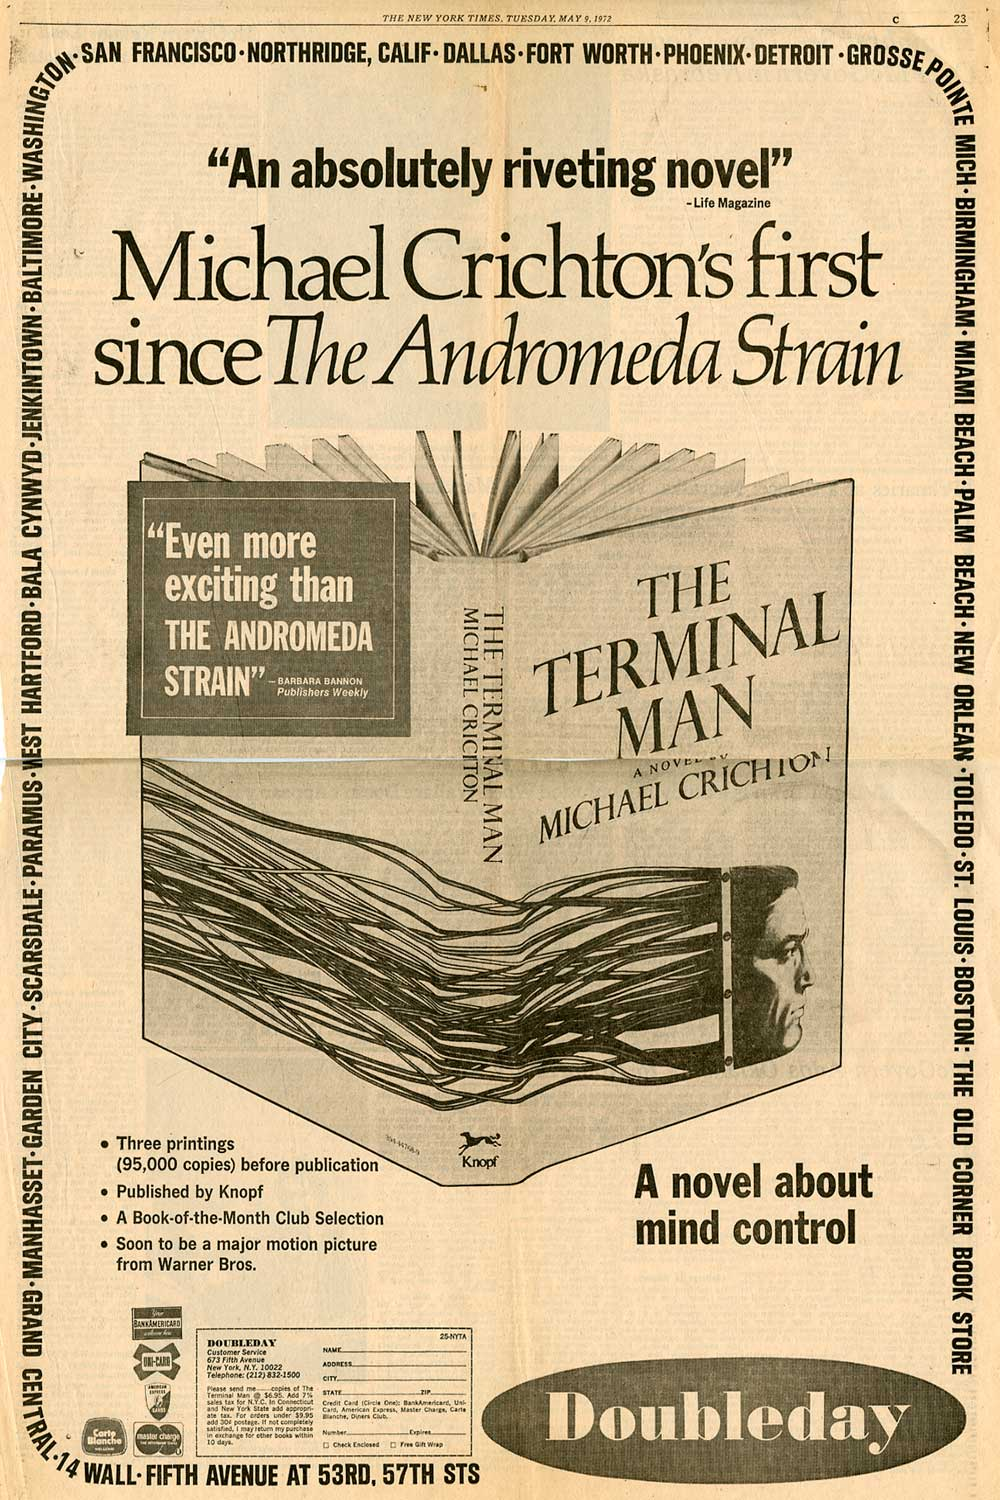 Full Page Ad for THE TERMINAL MAN